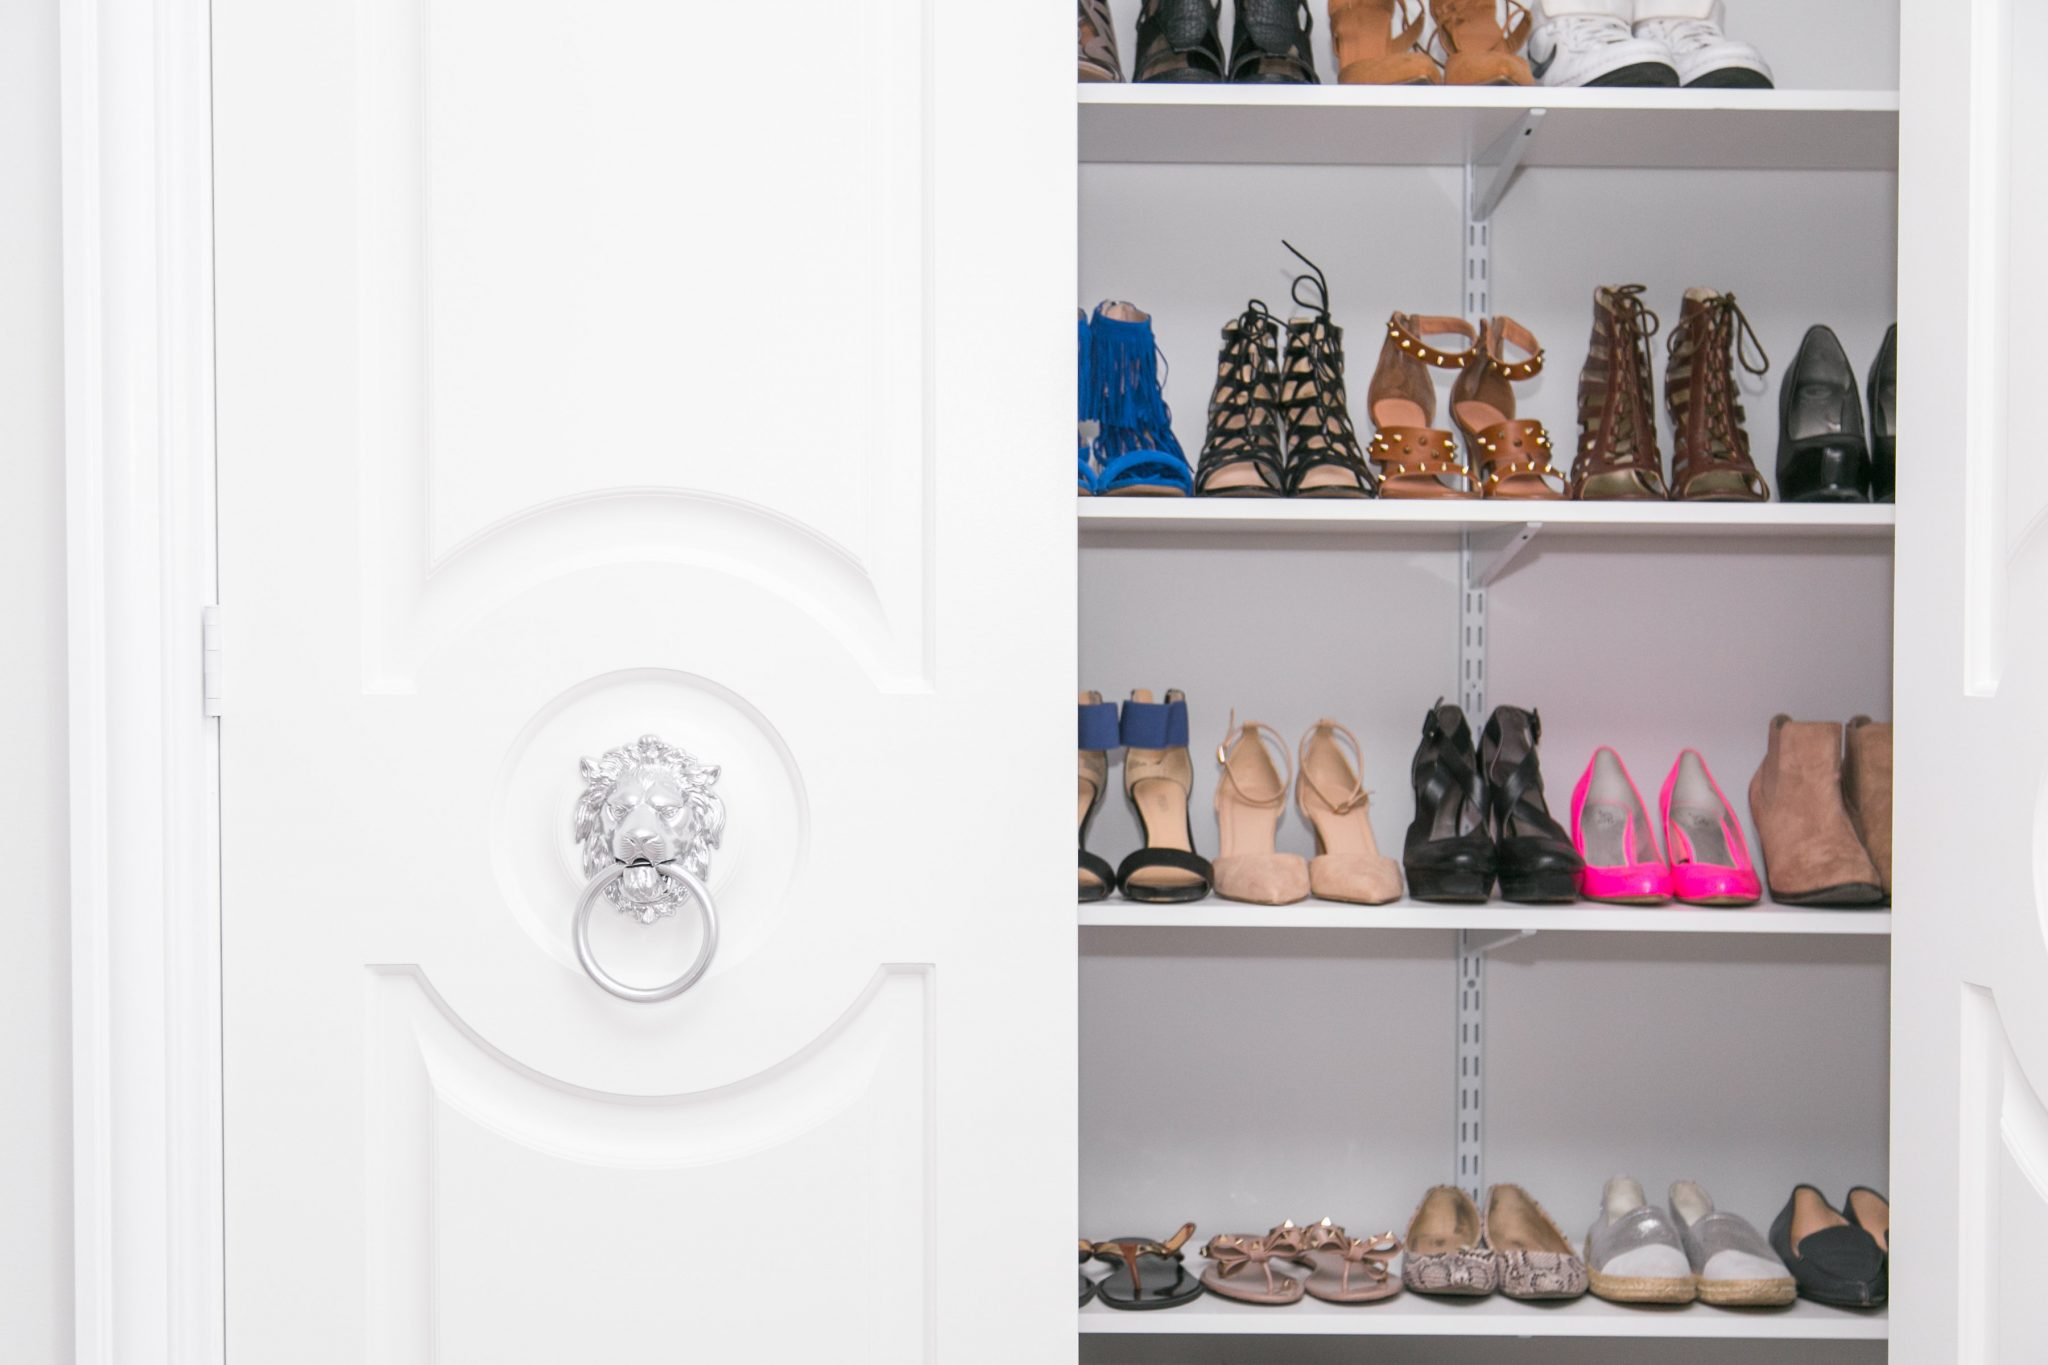 Dream Shoe Closet sparkleshinylove